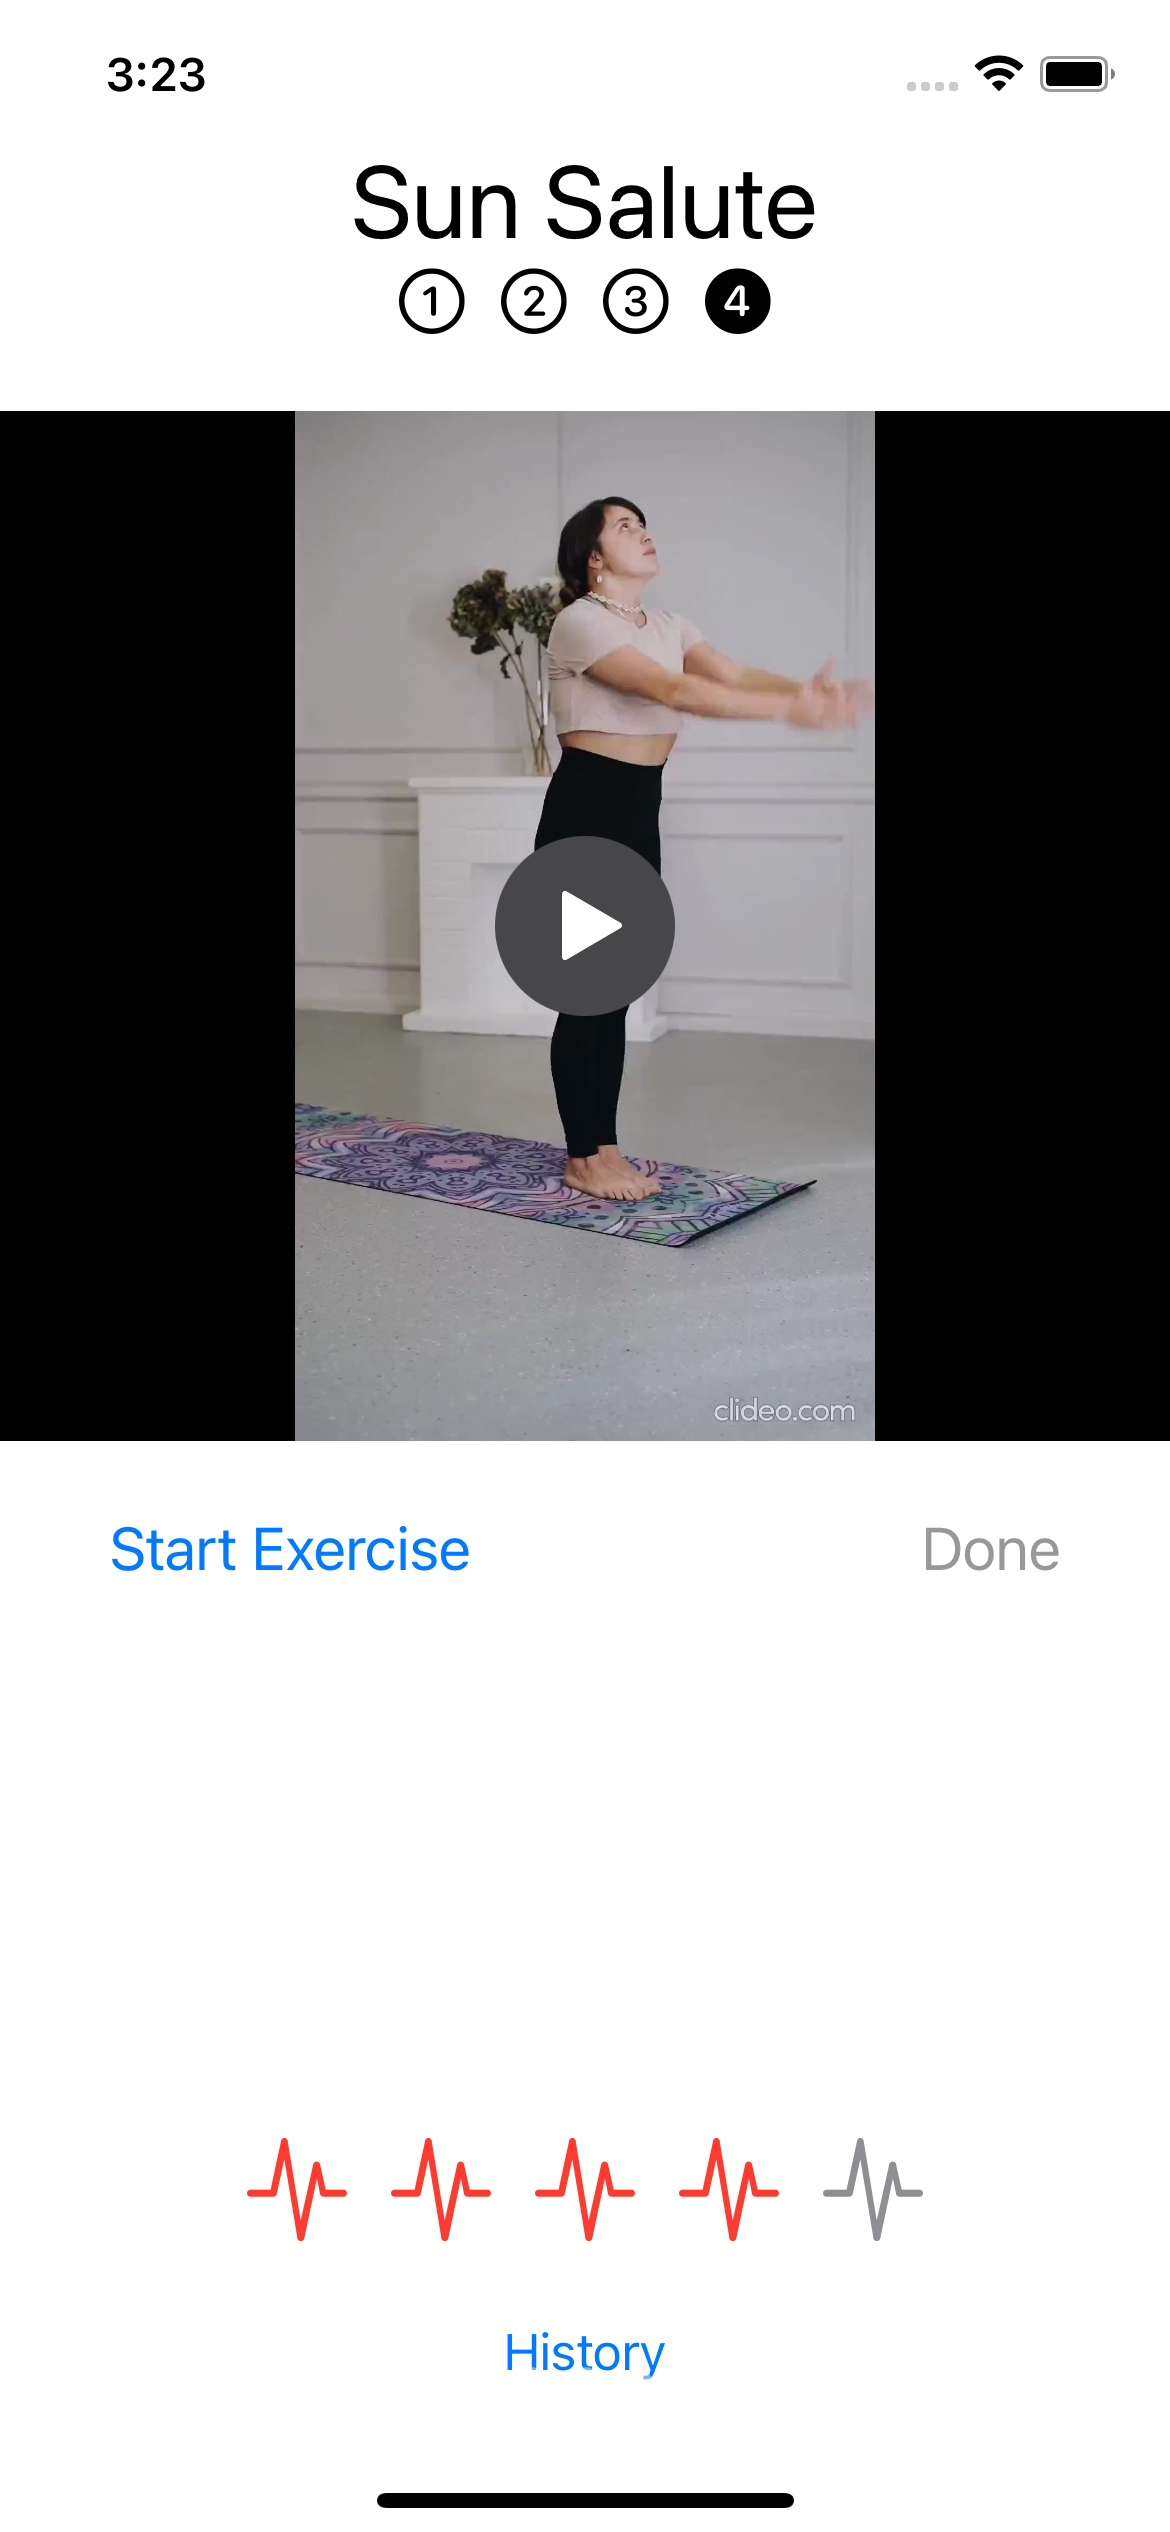 Rating the exercise